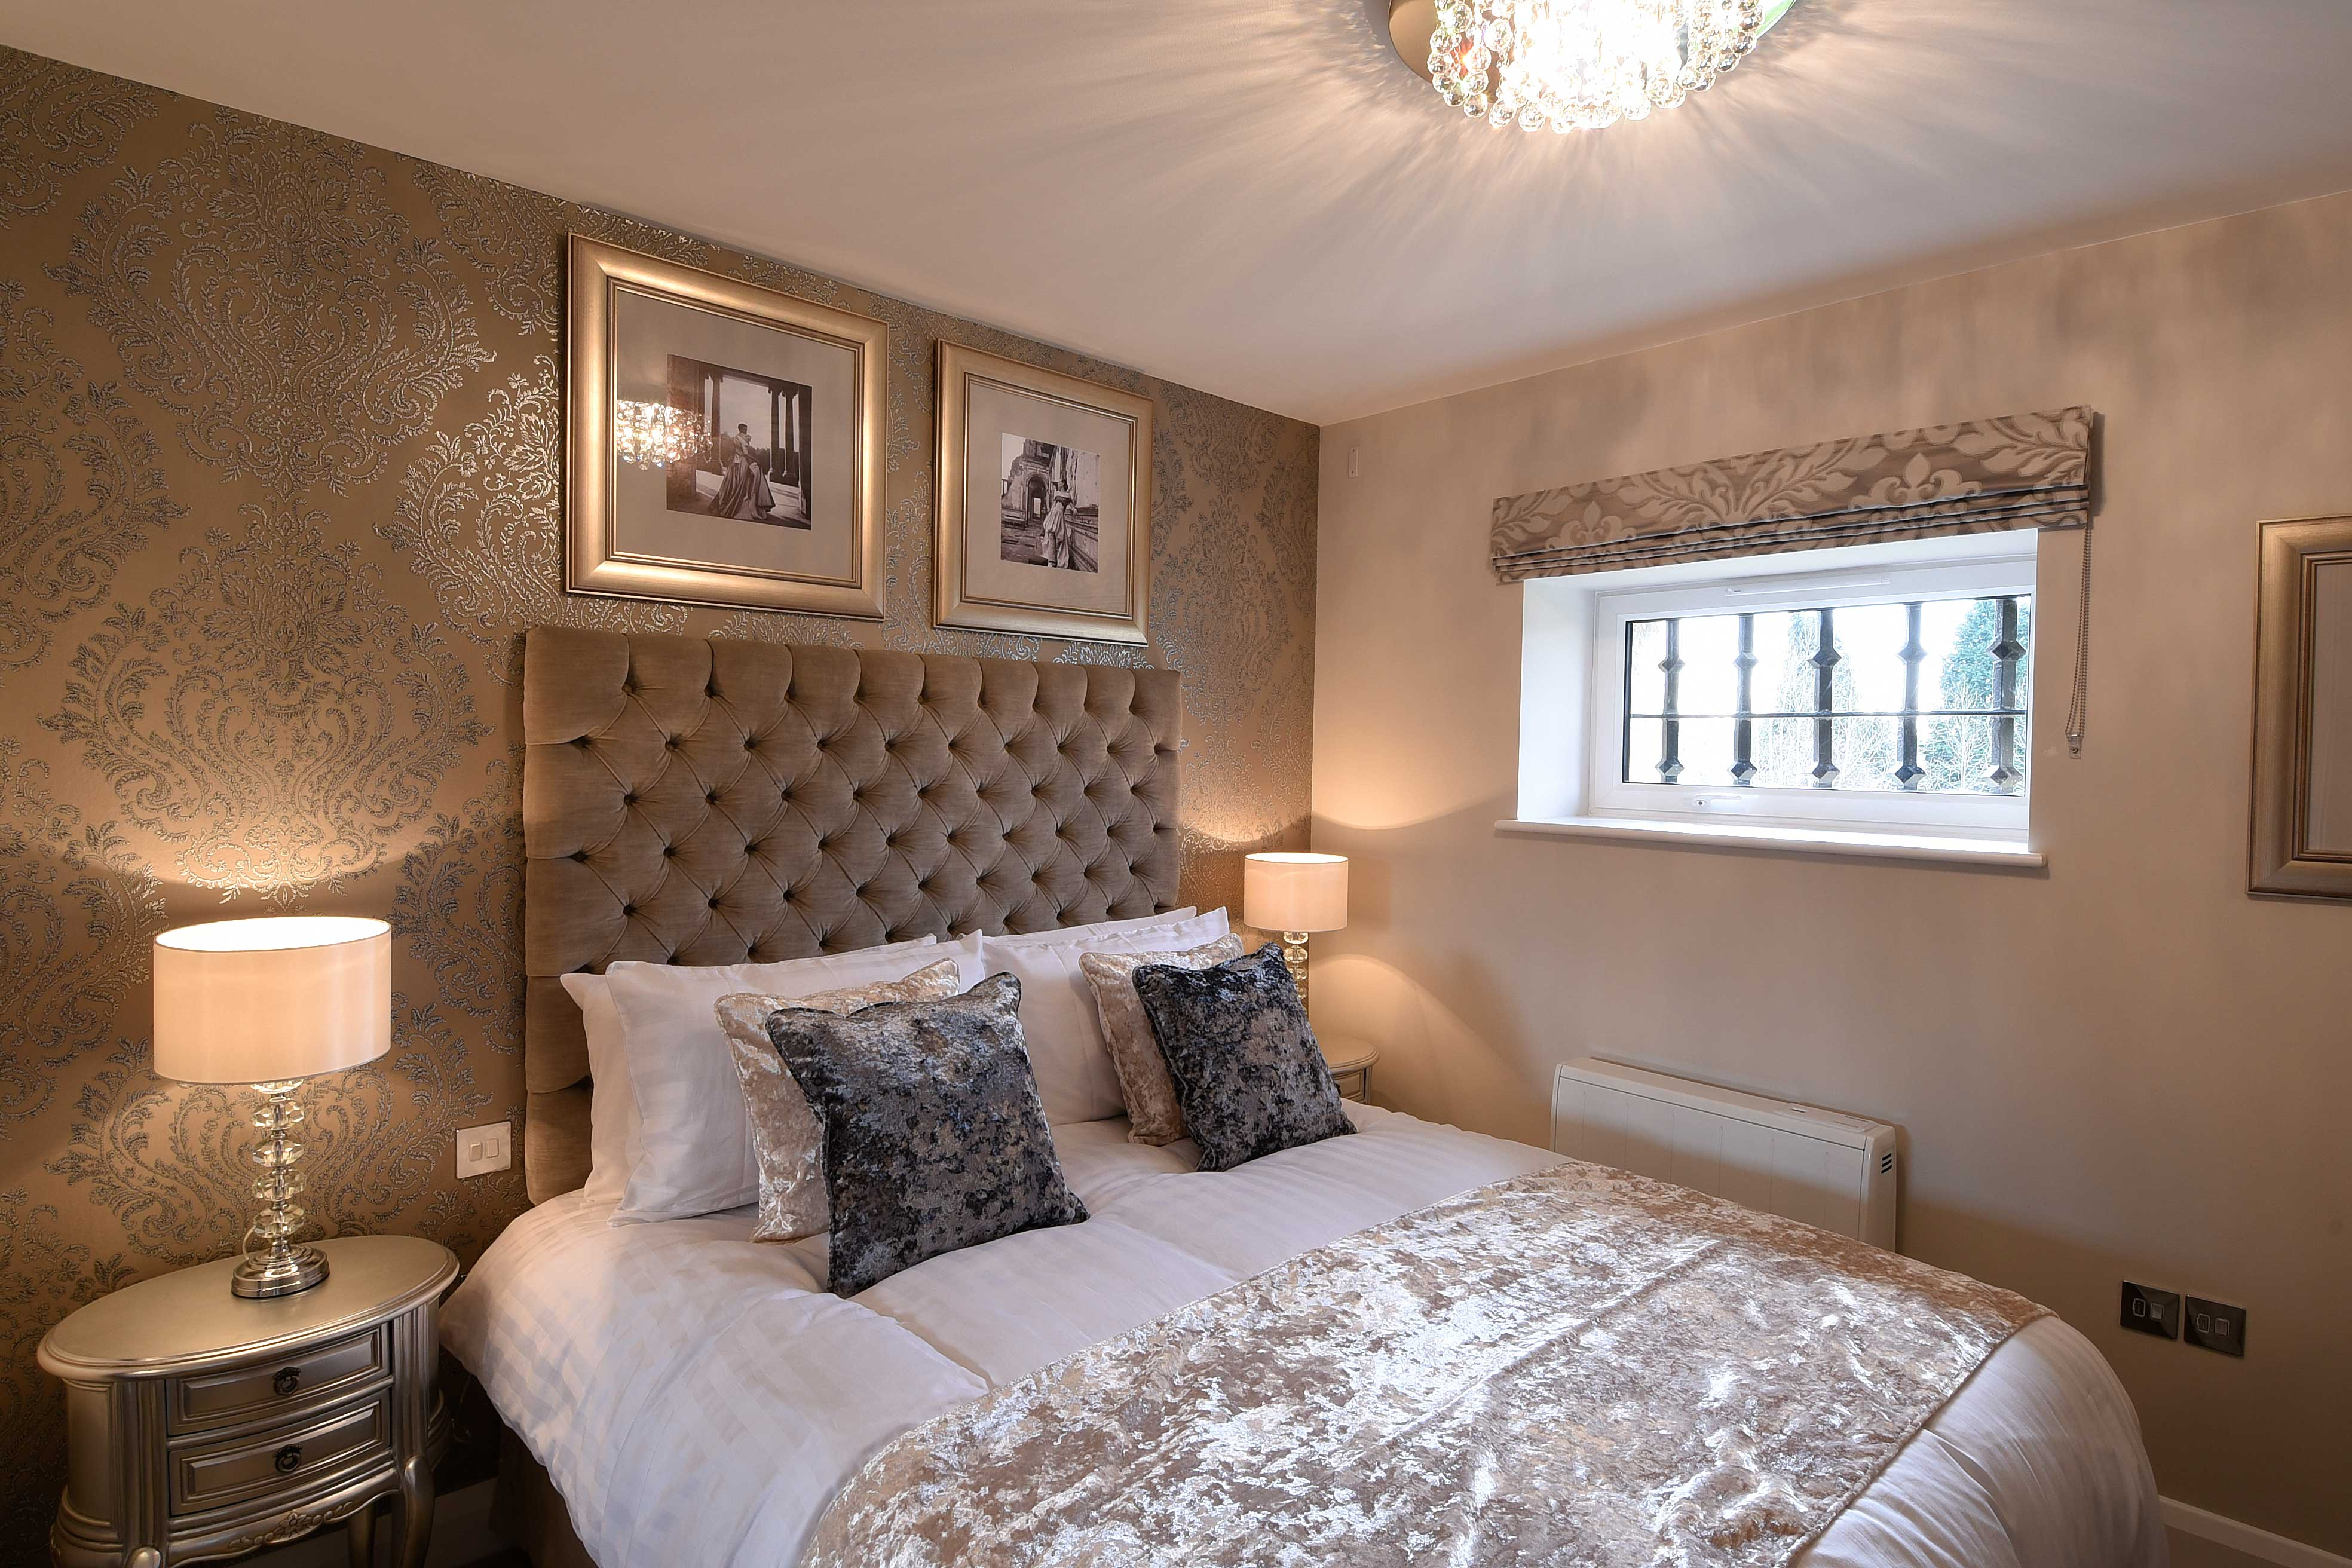 Roysse Suite: a 2 bedroom luxury serviced apartment at The Old Gaol in Abingdon, Oxfordshire. Ideal accommodation for corporate or holiday short let